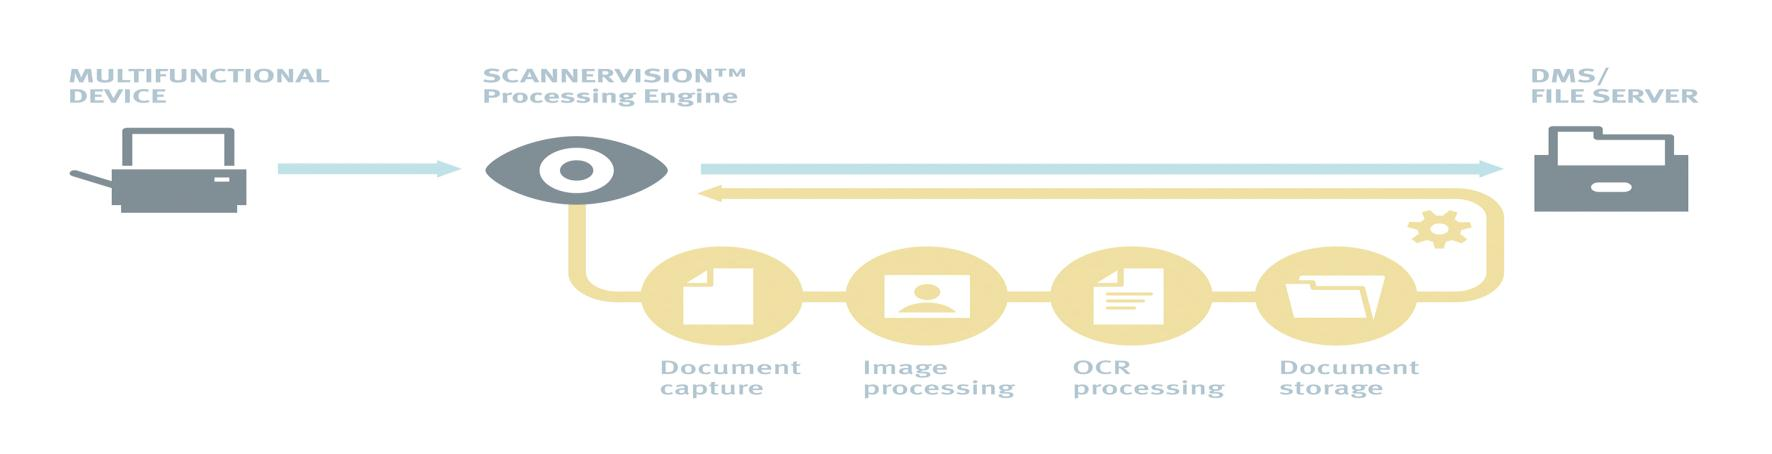 ScannerVision introduction Concept The technology and functionality in ScannerVision is utilised by organisations to facilitate policy-driven data capture and storage.